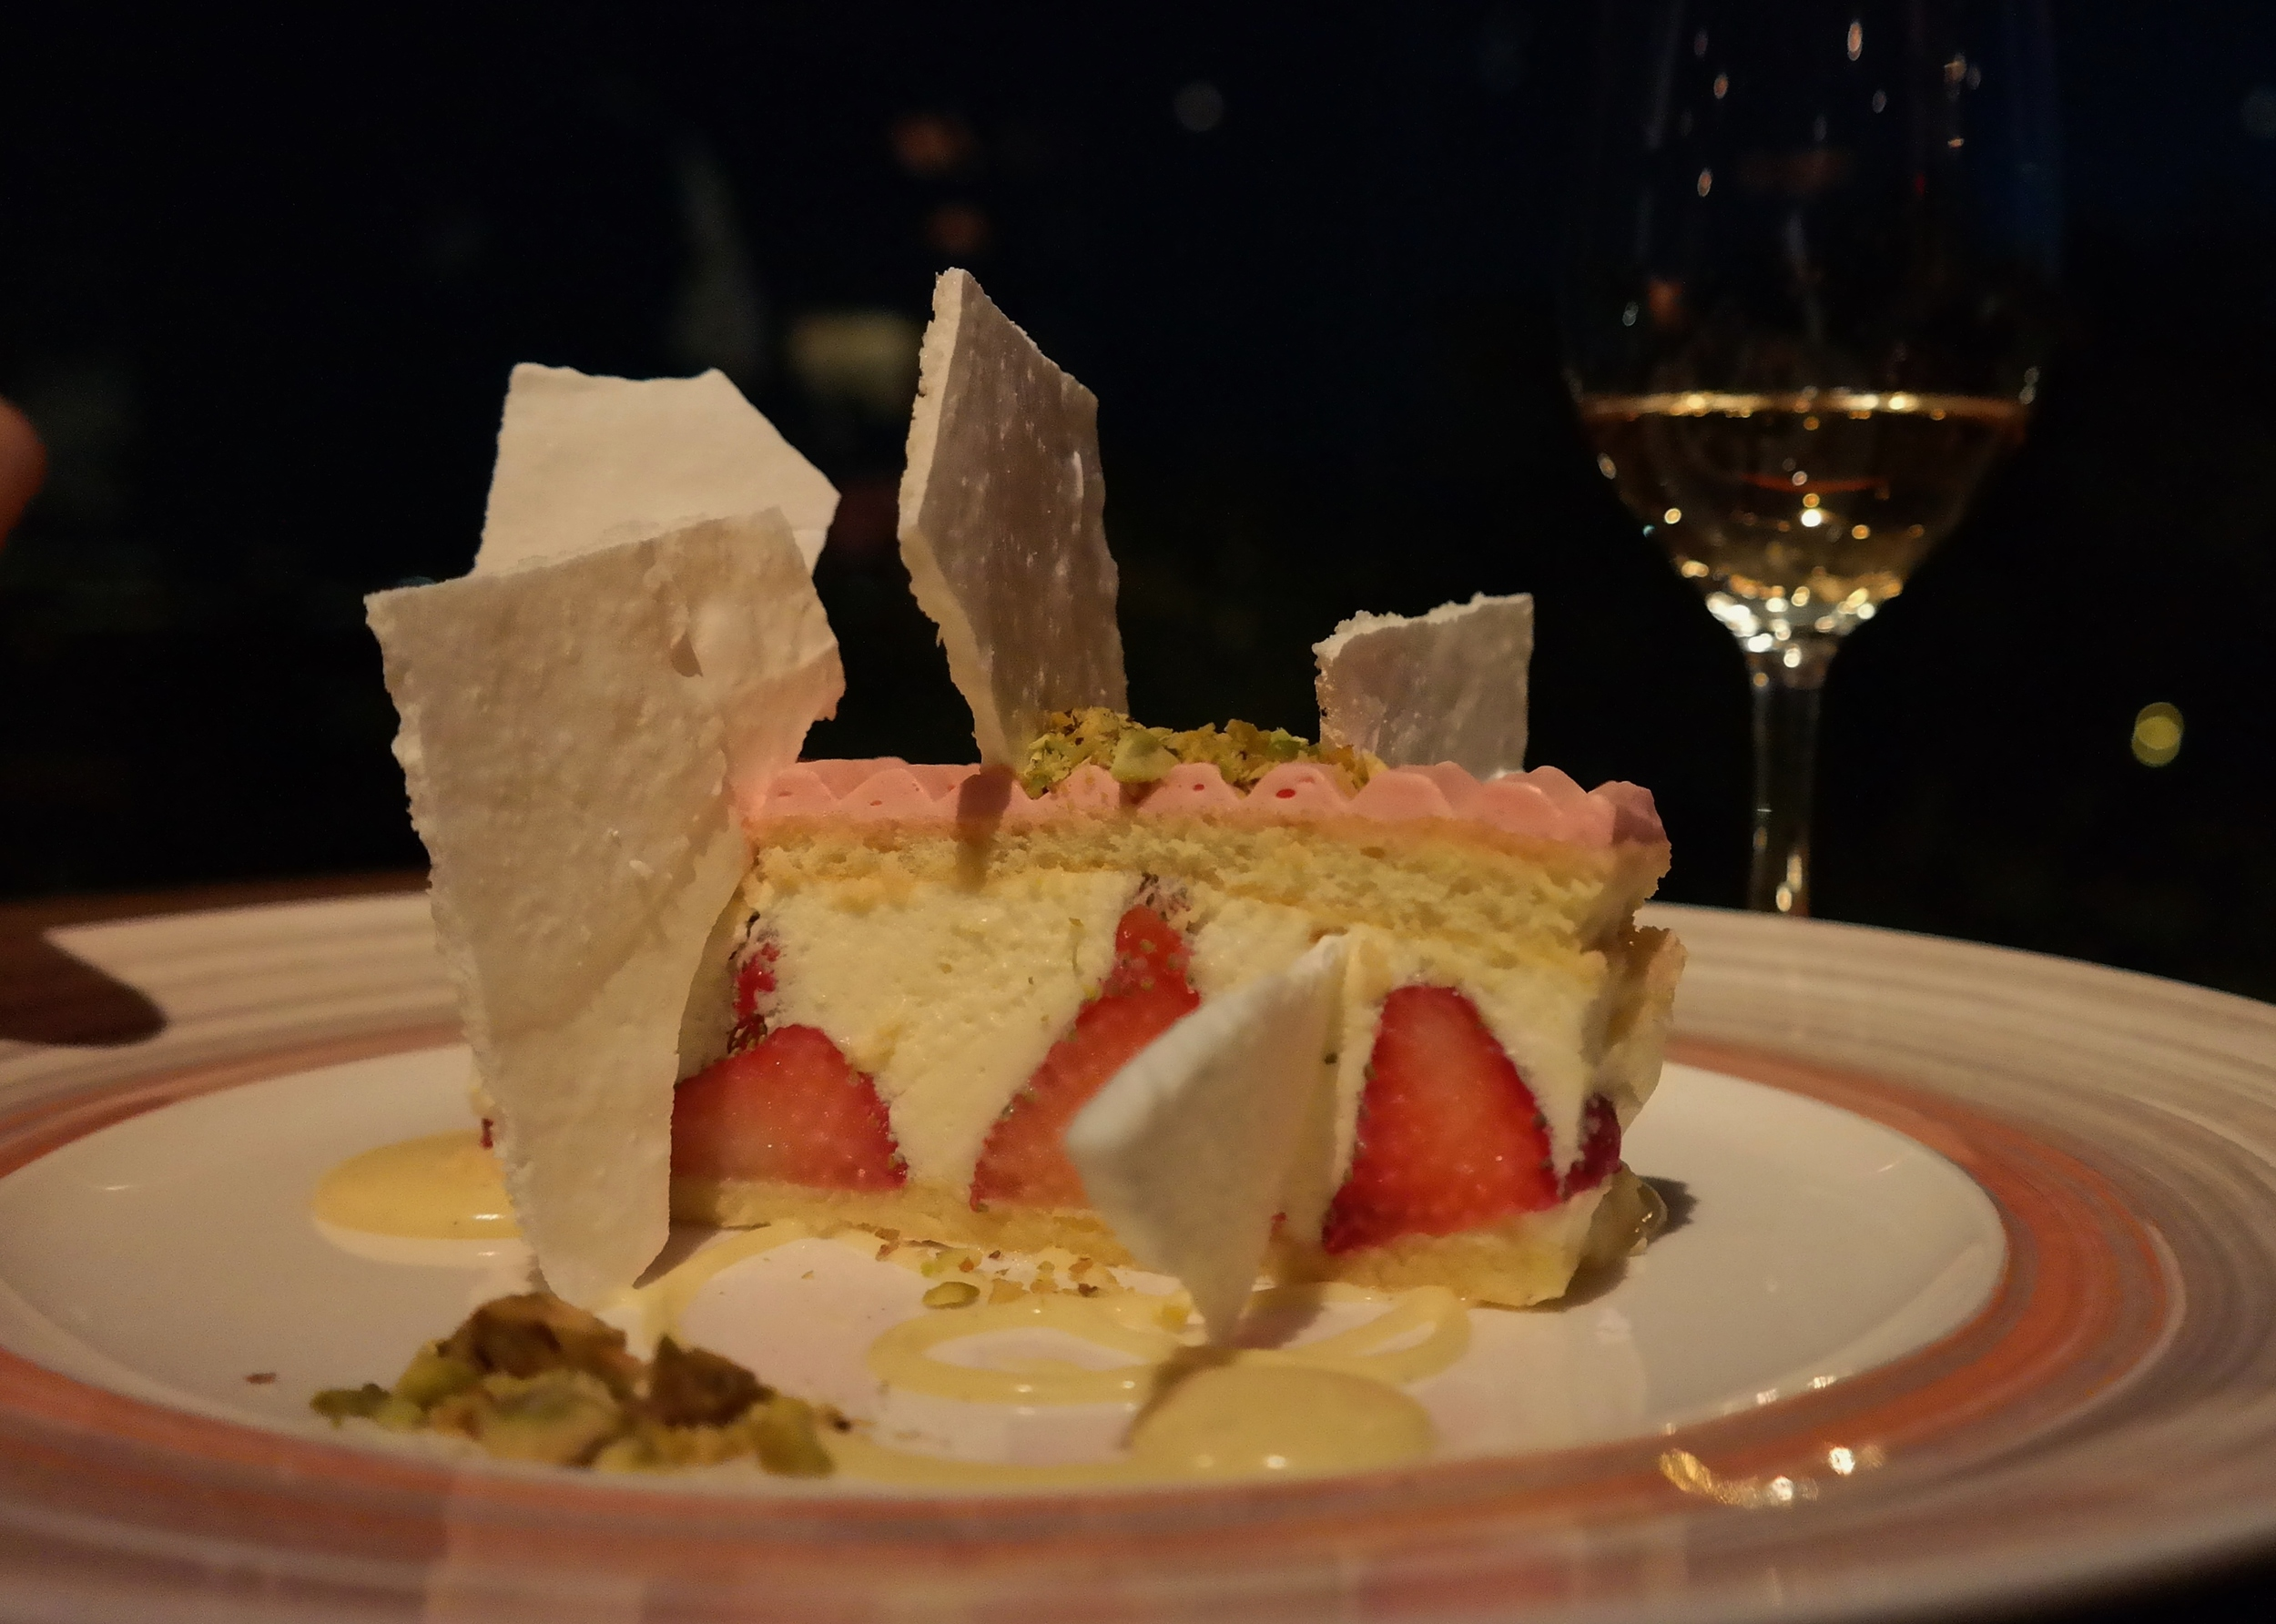 Strawberry cream cake with Grand Marnier, pistachios, and crispy meringue